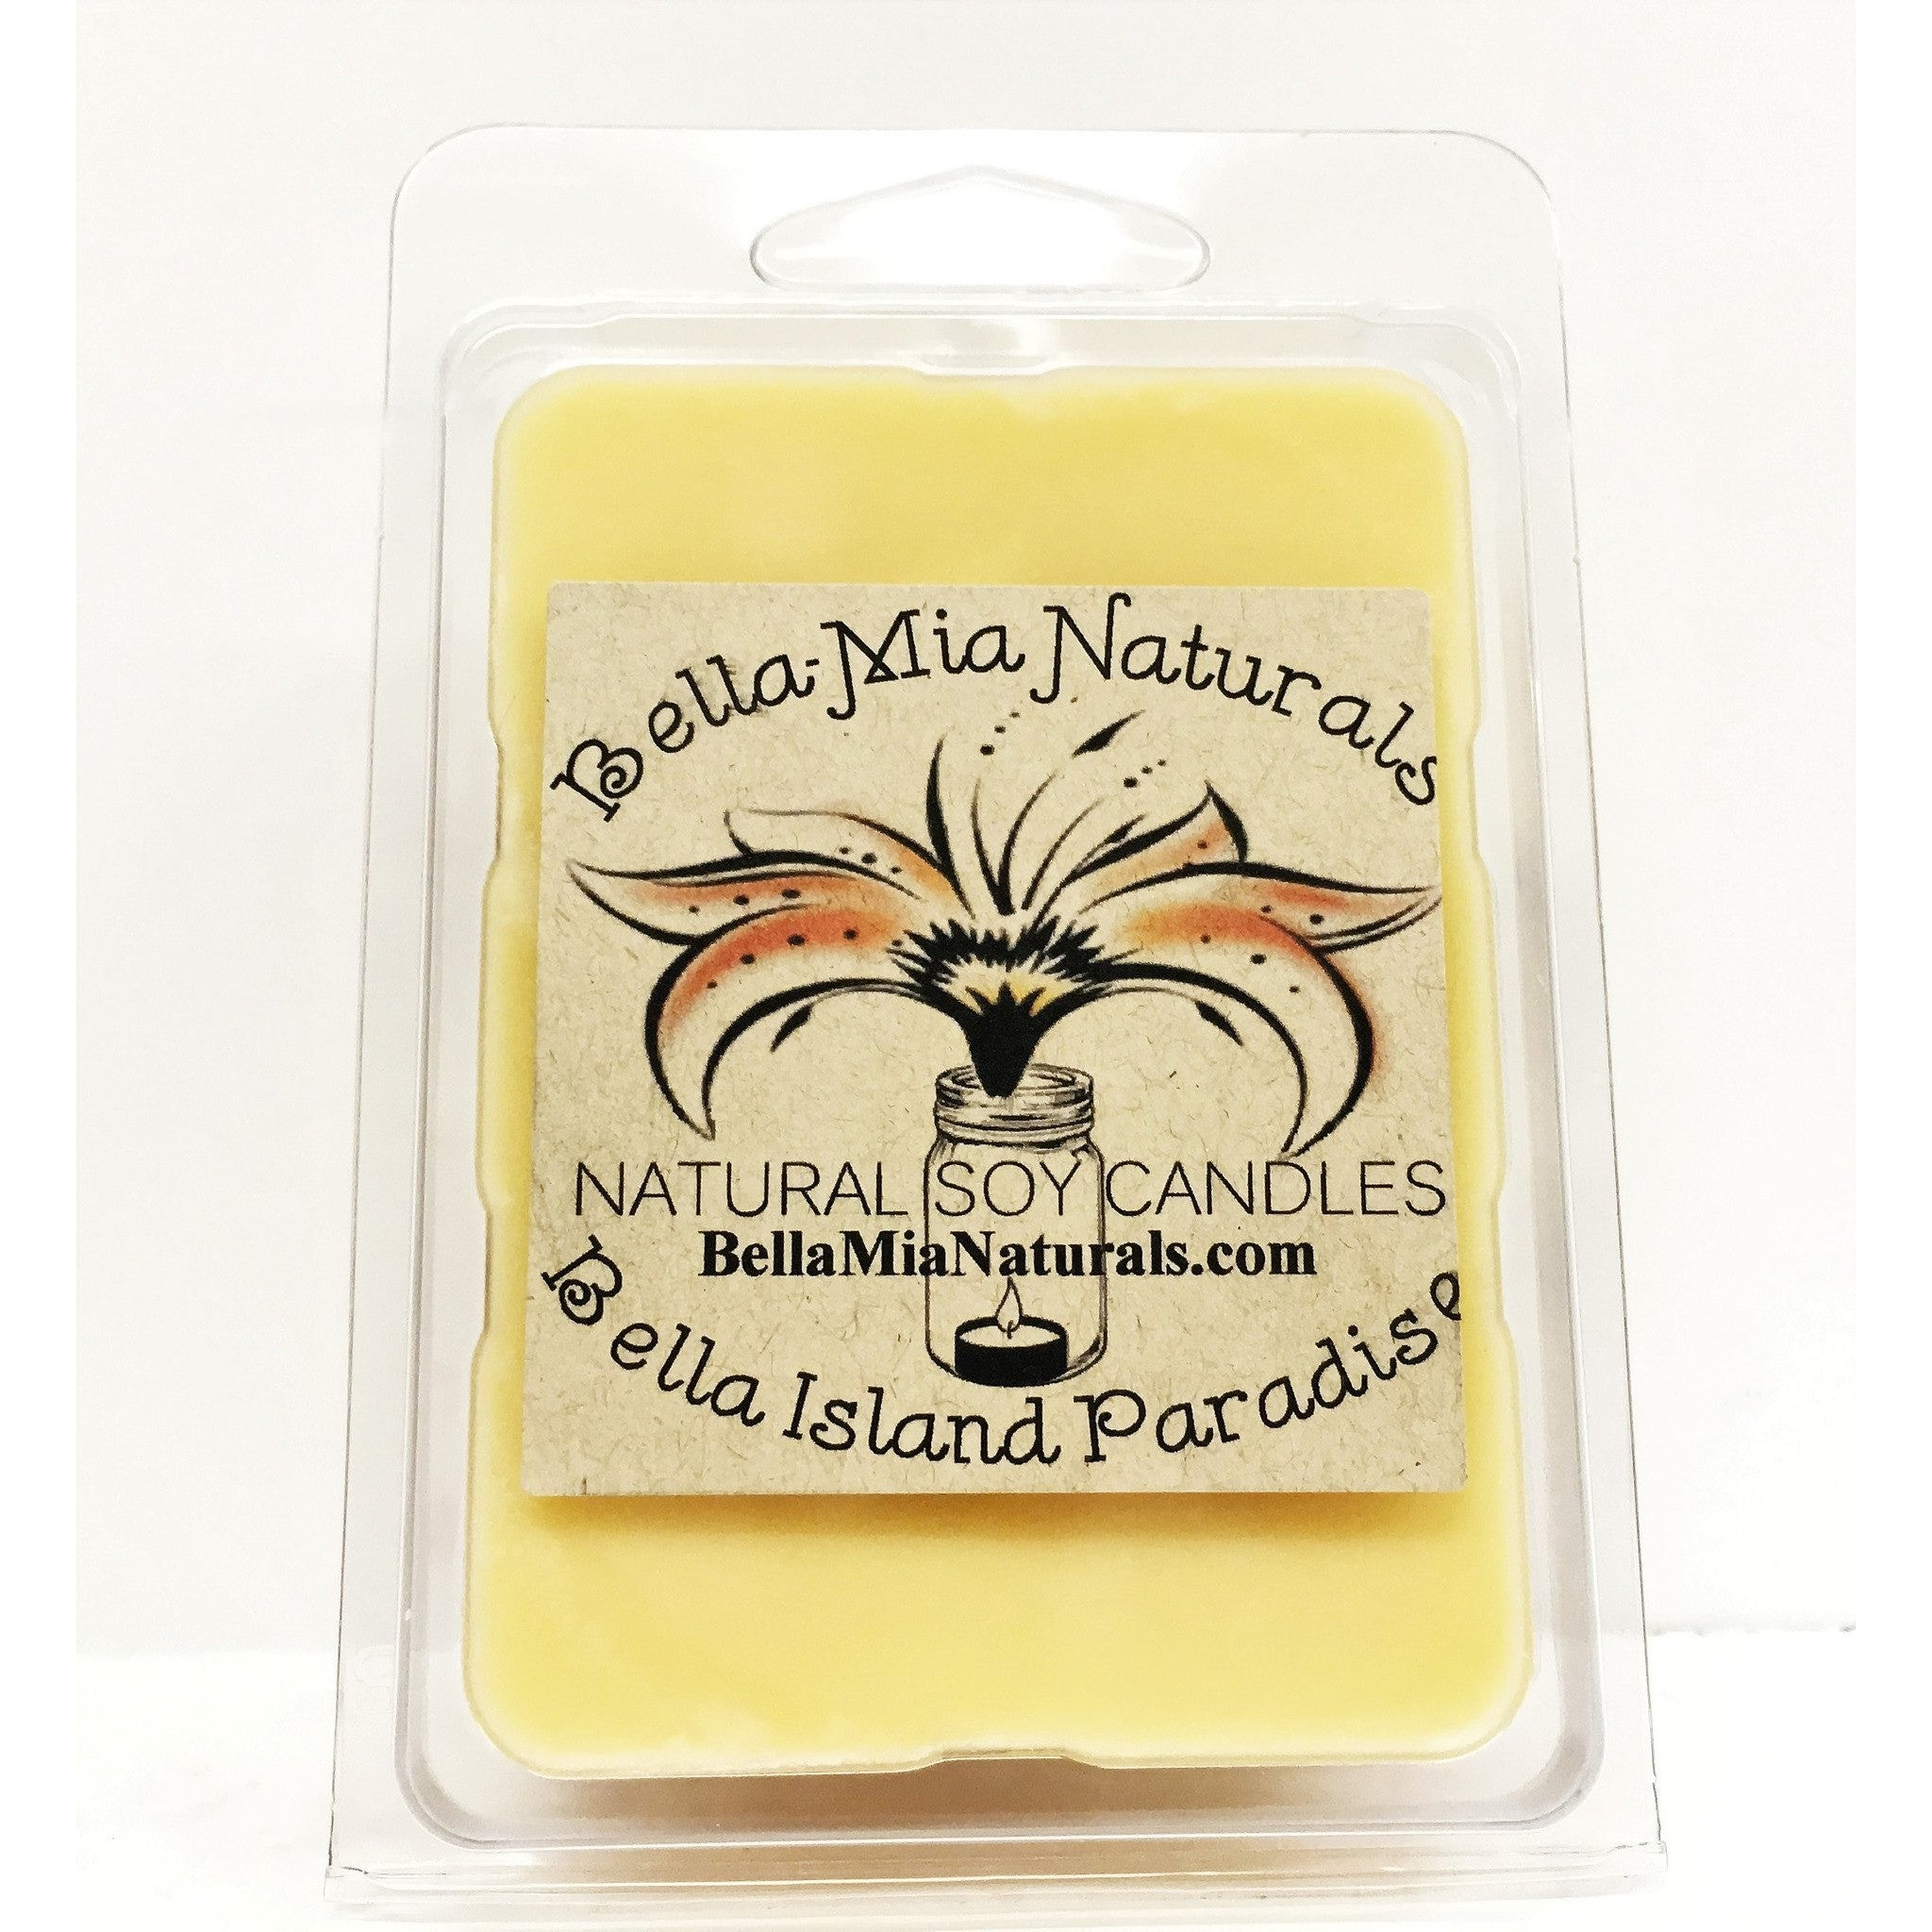 Bella Island Paradise Natural Hand Poured Soy Candles - Melt-6 Pack - Bella-Mia Naturals All Natural Soy Candles & Lip Balms - 5